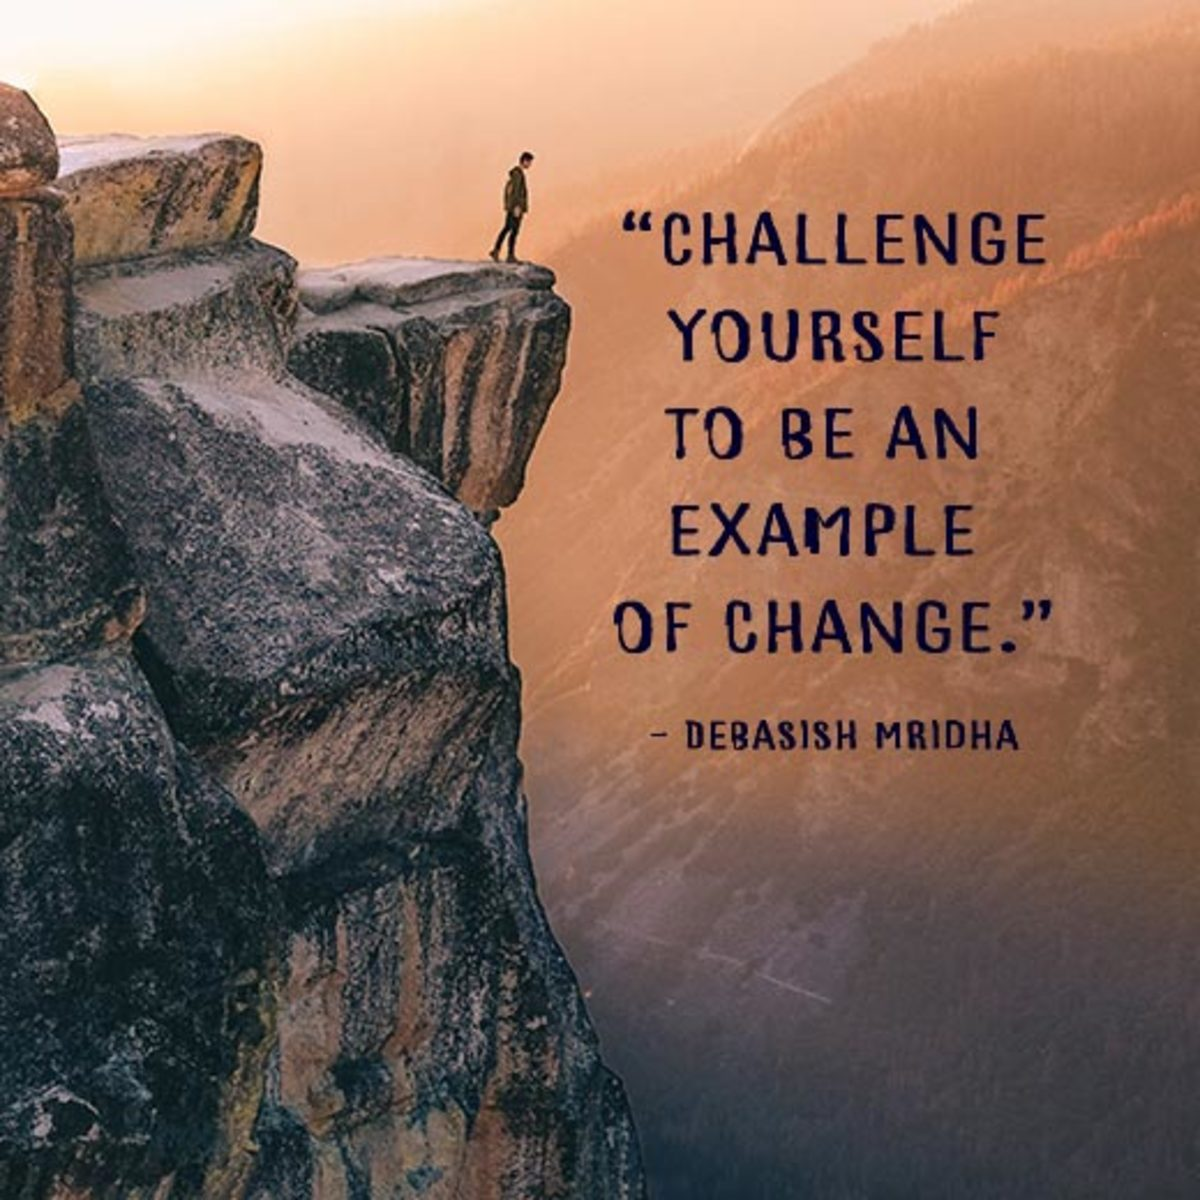 """Challenge yourself to be an example of change."" ―Debasish Mridha"